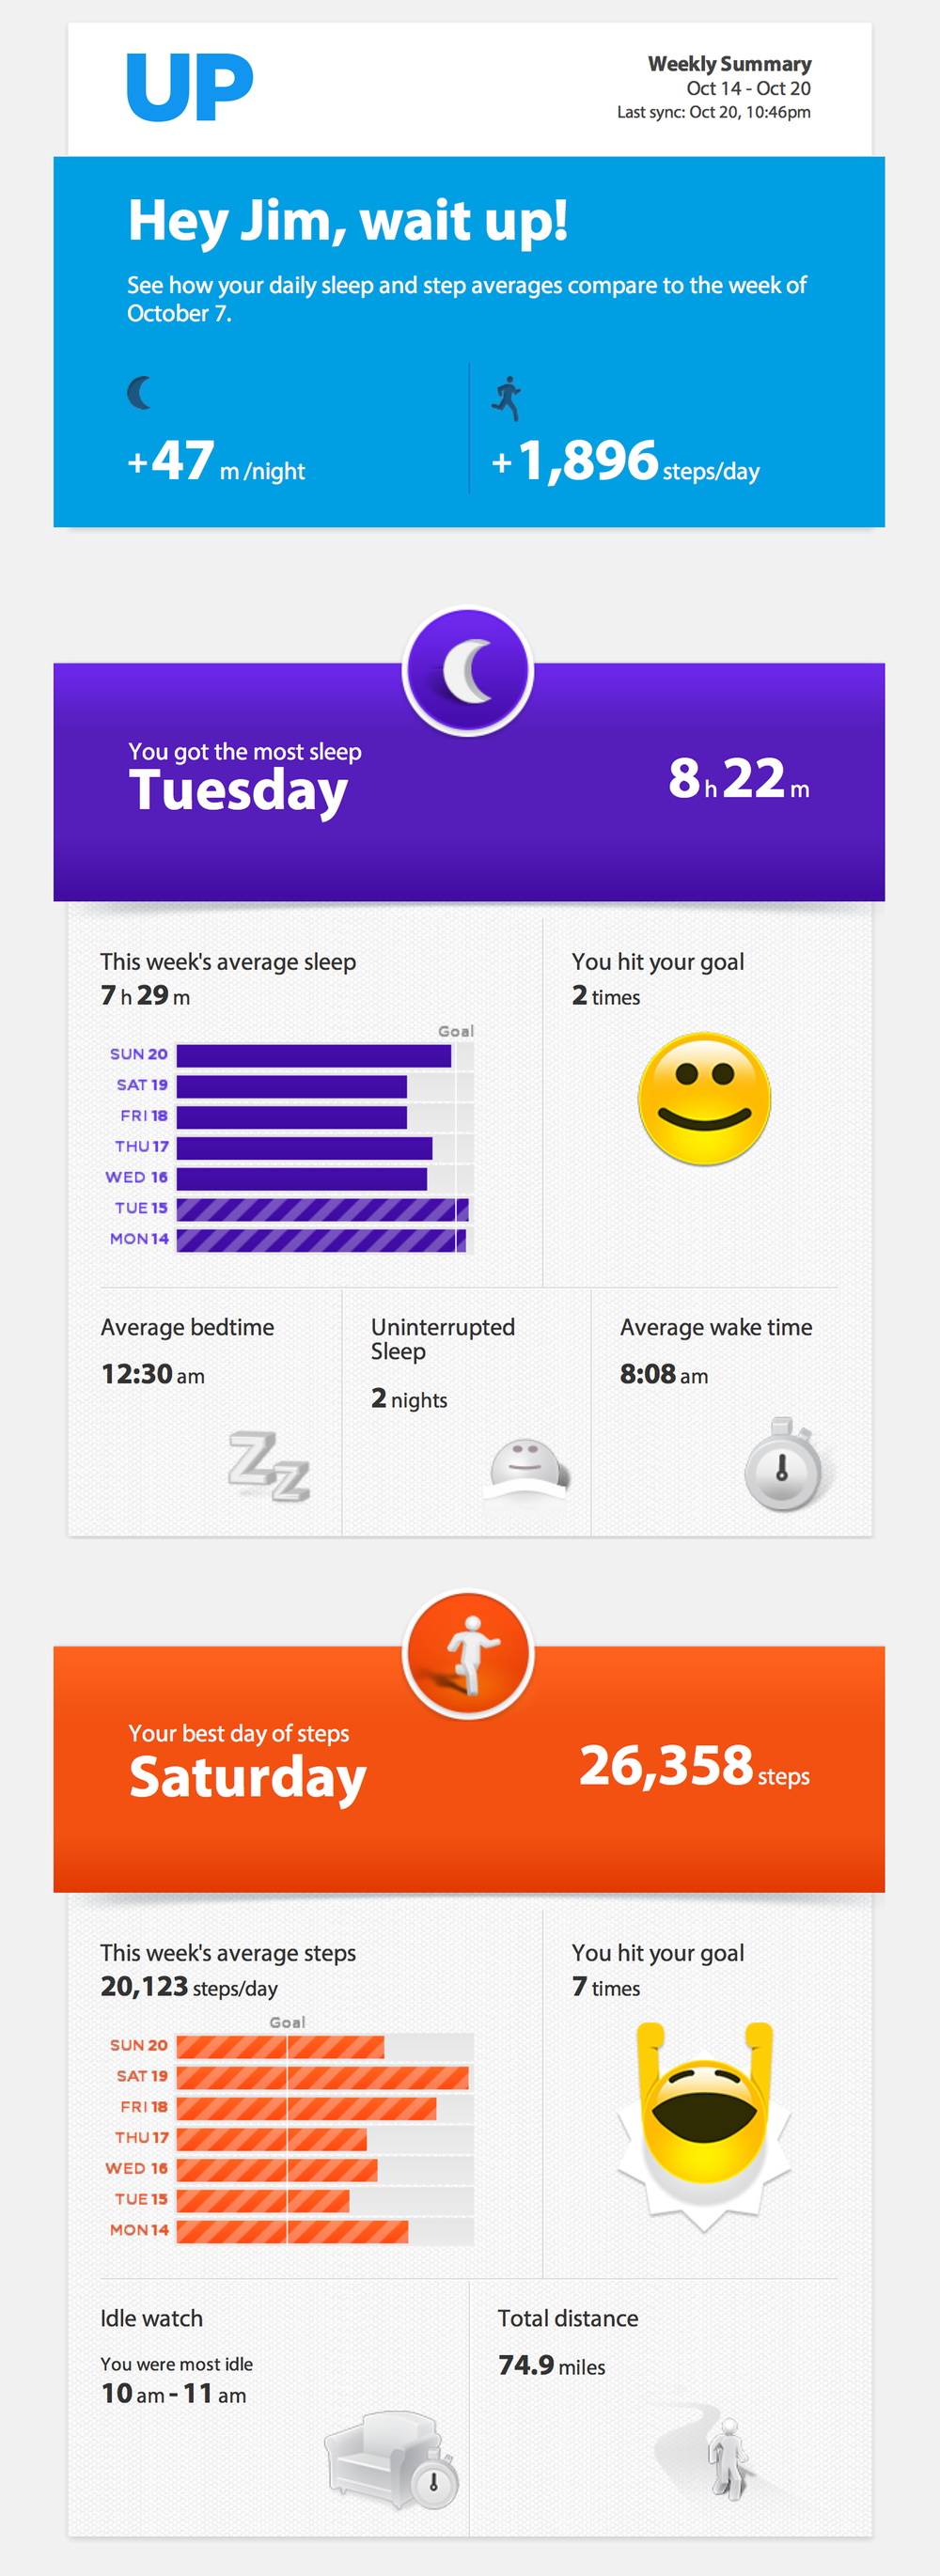 My Jawbone UP report for the week ending October 20, 2013.